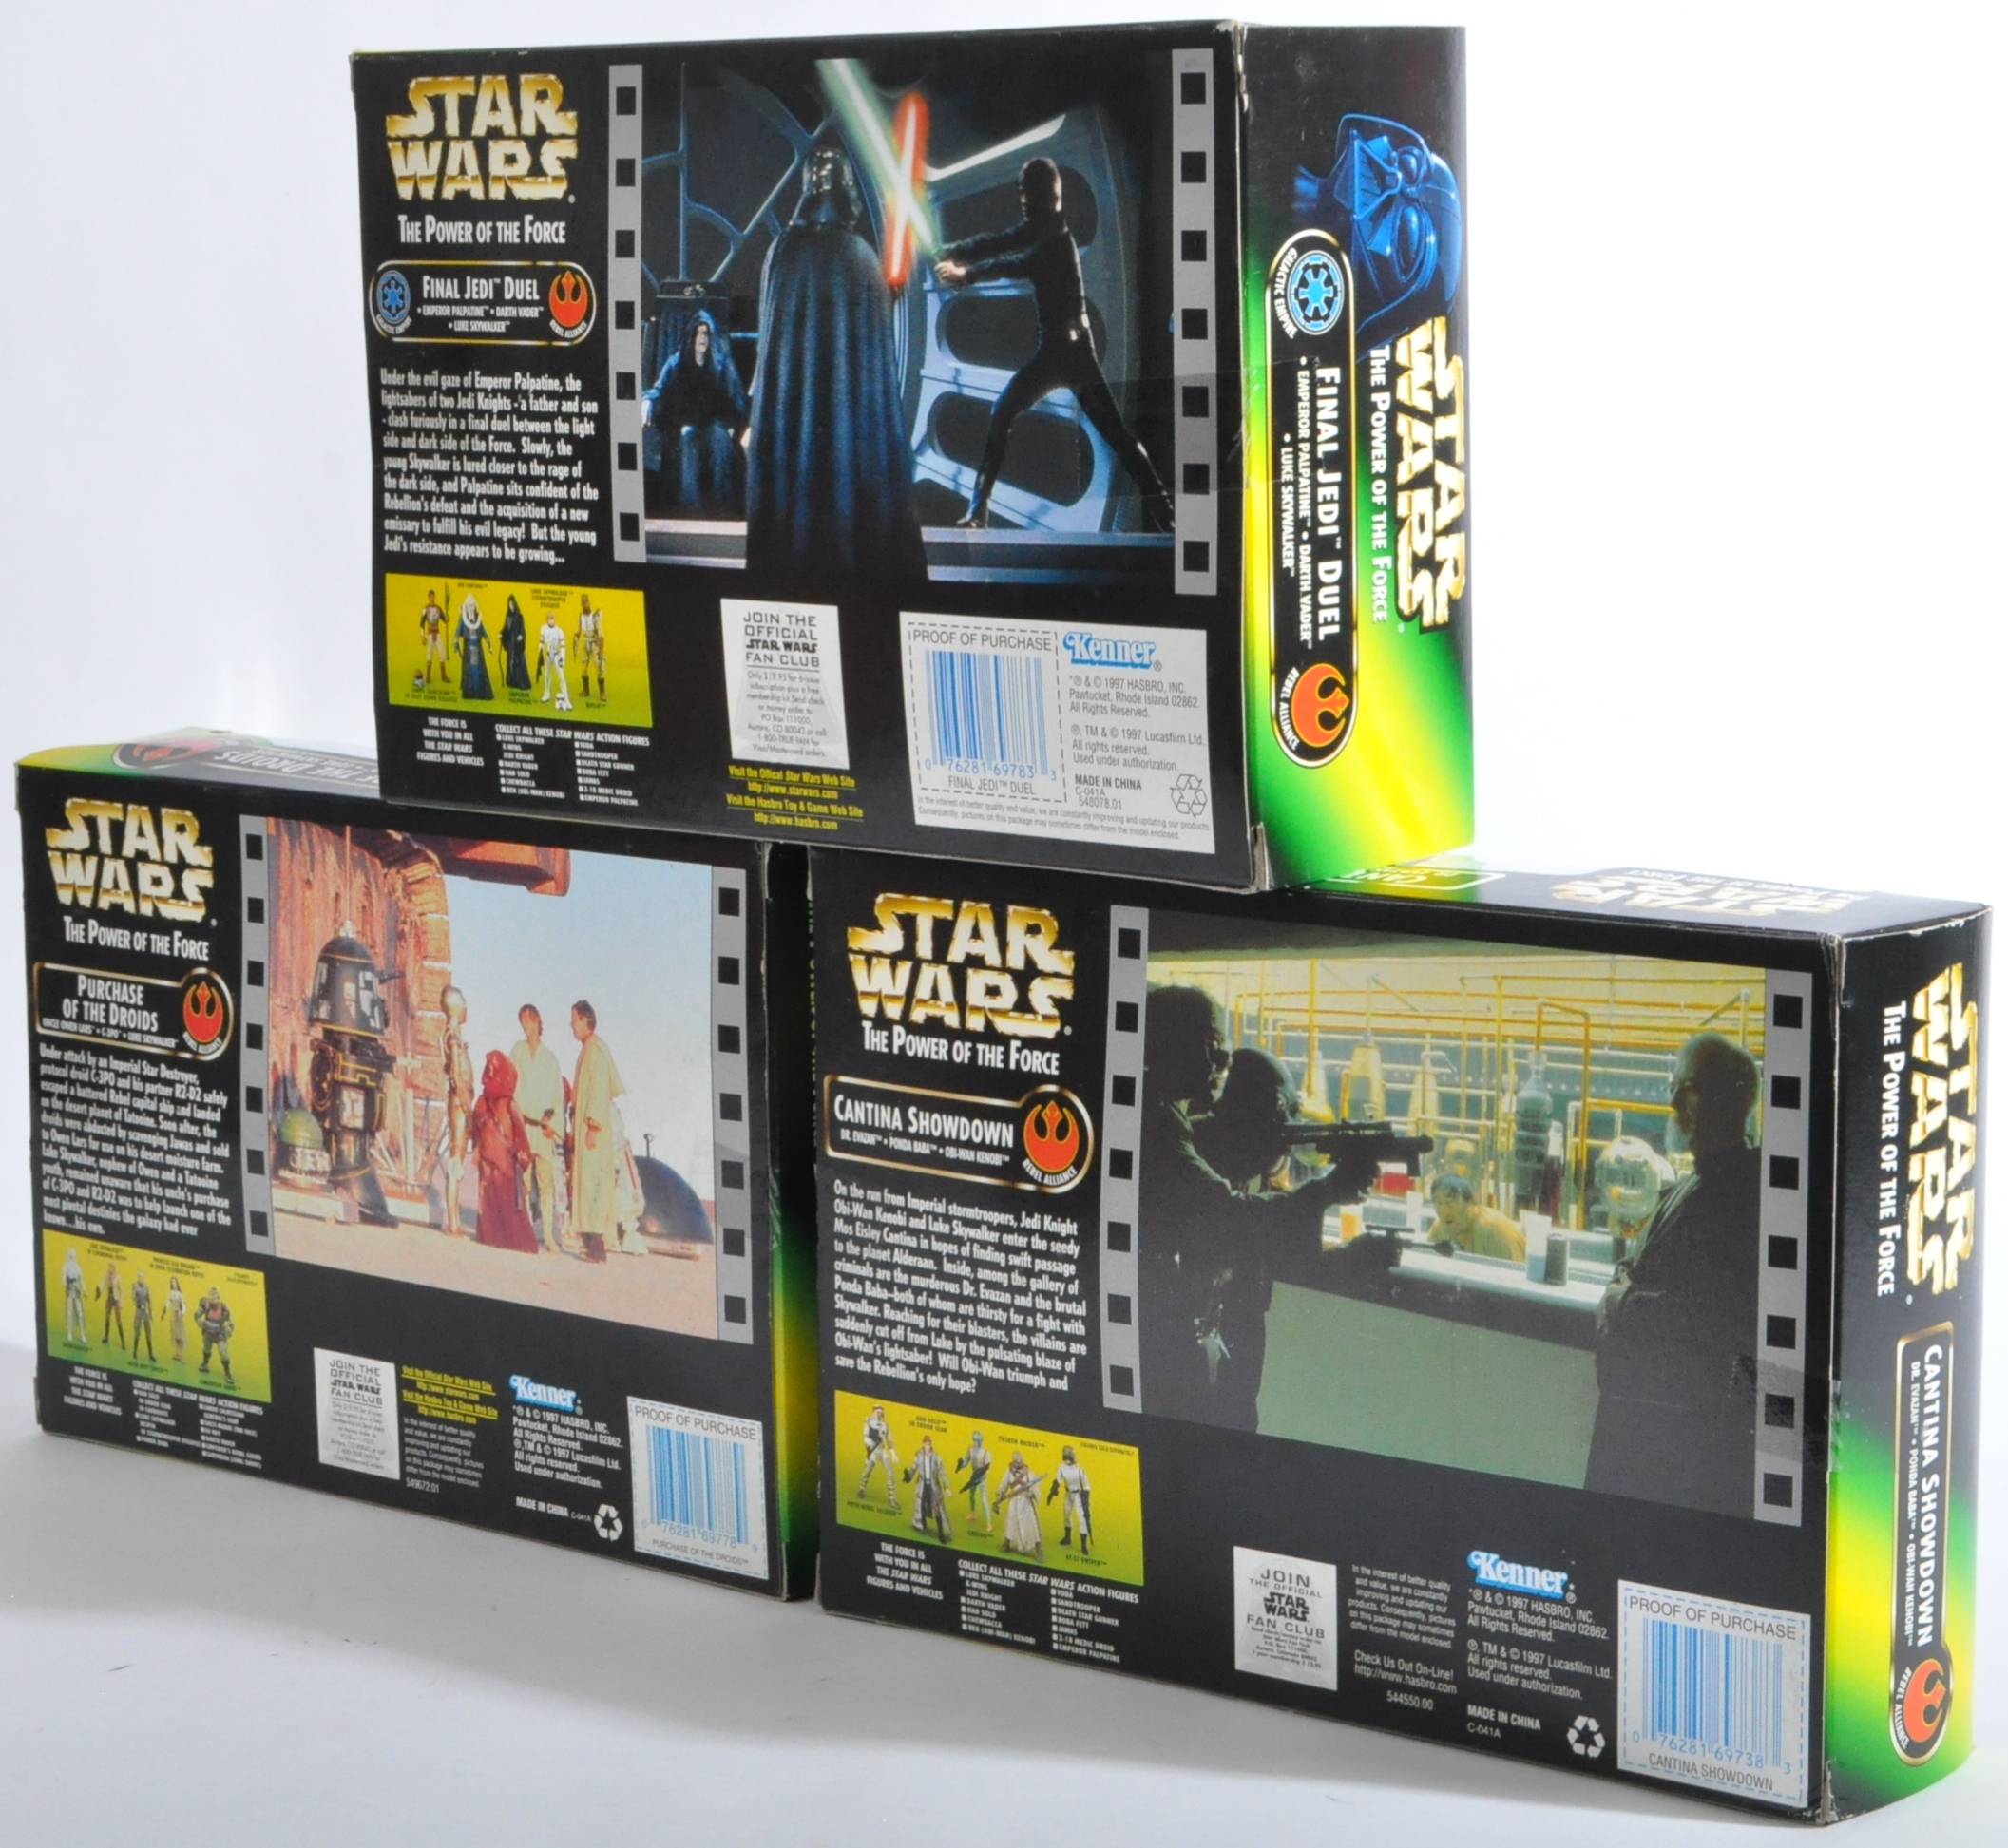 STAR WARS - COLLECTION OF KENNER POWER OF THE FORCE ACTION FIGURES - Image 4 of 5